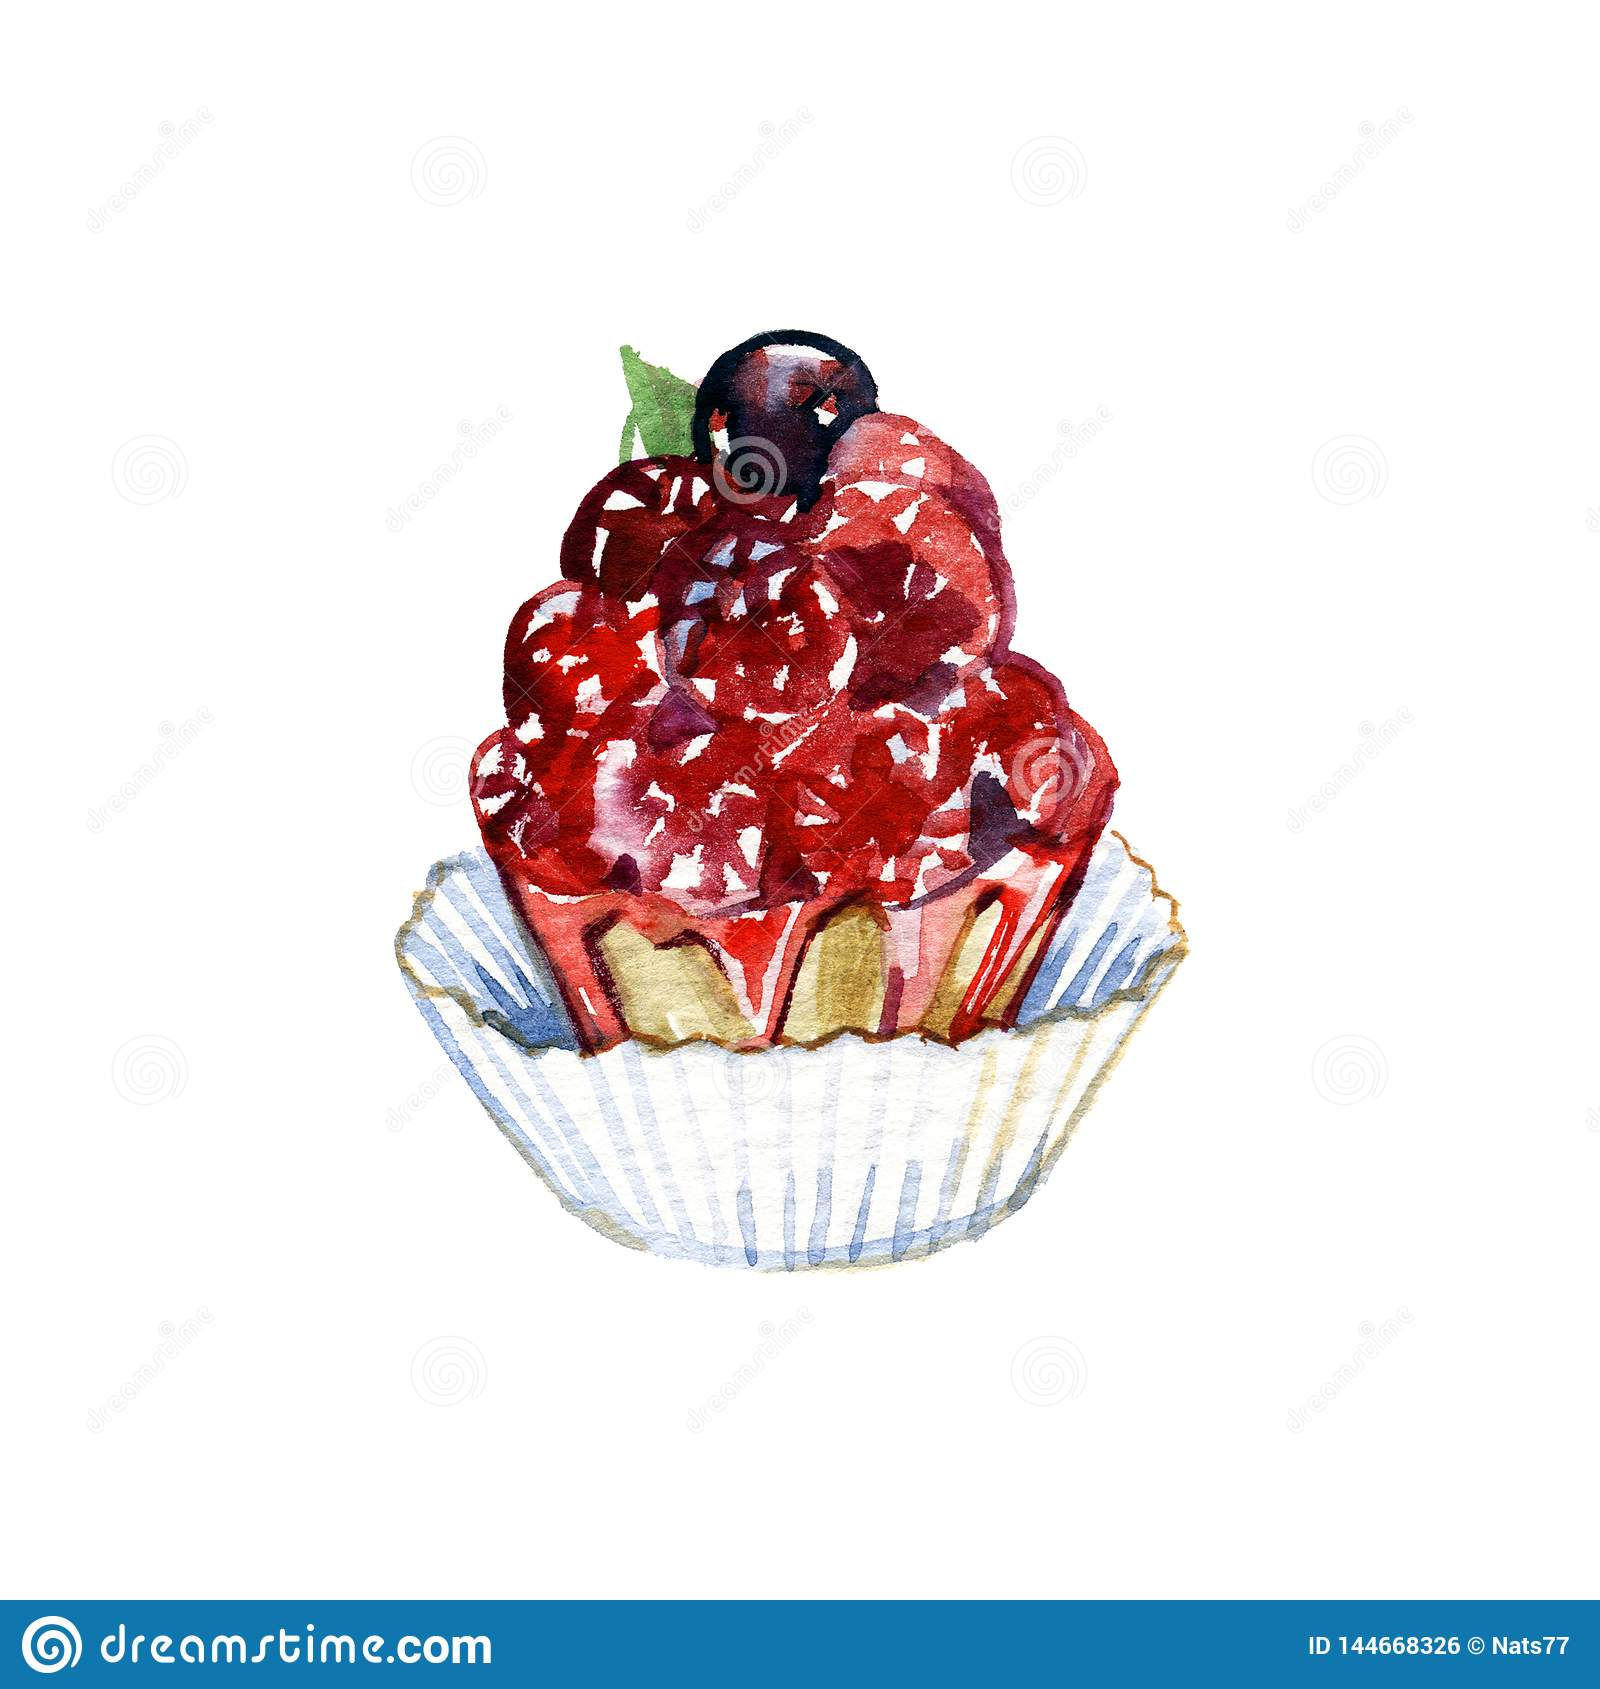 Hand drawn cake with watercolor texture. Cake with cream, berries. Hand painted sweet cake on a white background. Poster